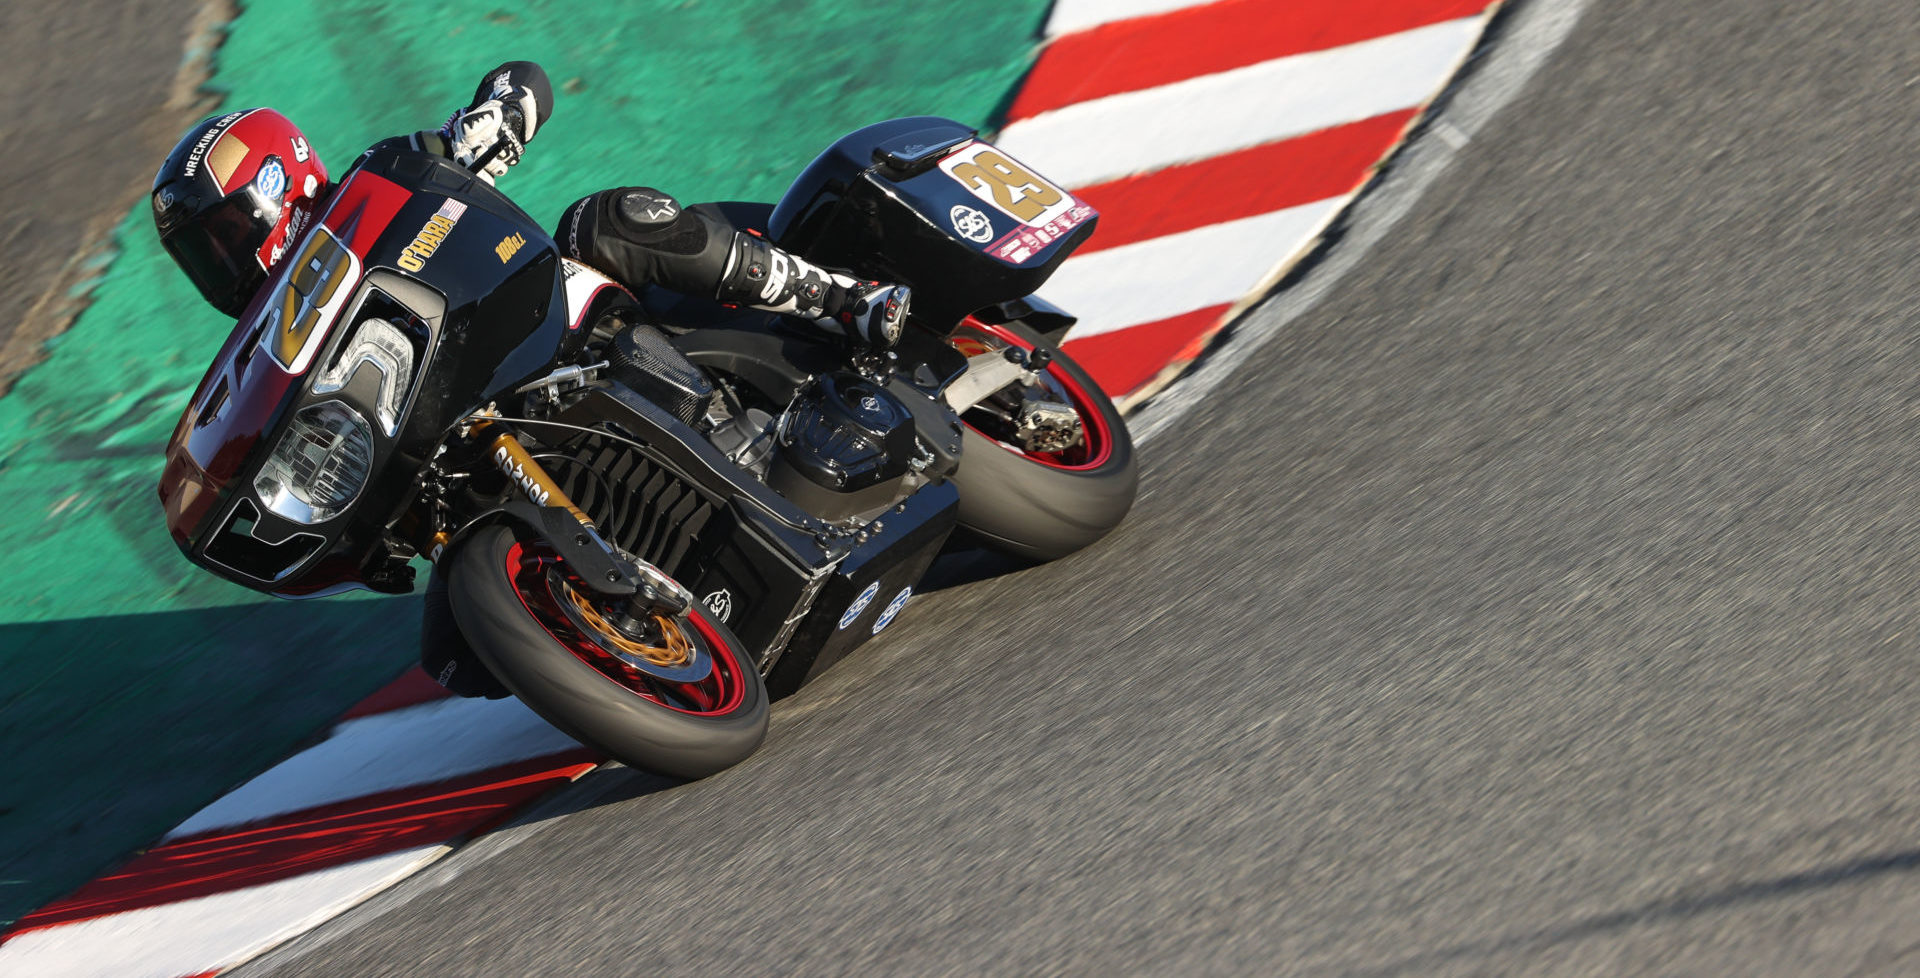 Tyler O'Hara (29) on his S&S Indian Challenger at Laguna Seca. Photo by Brian J. Nelson.